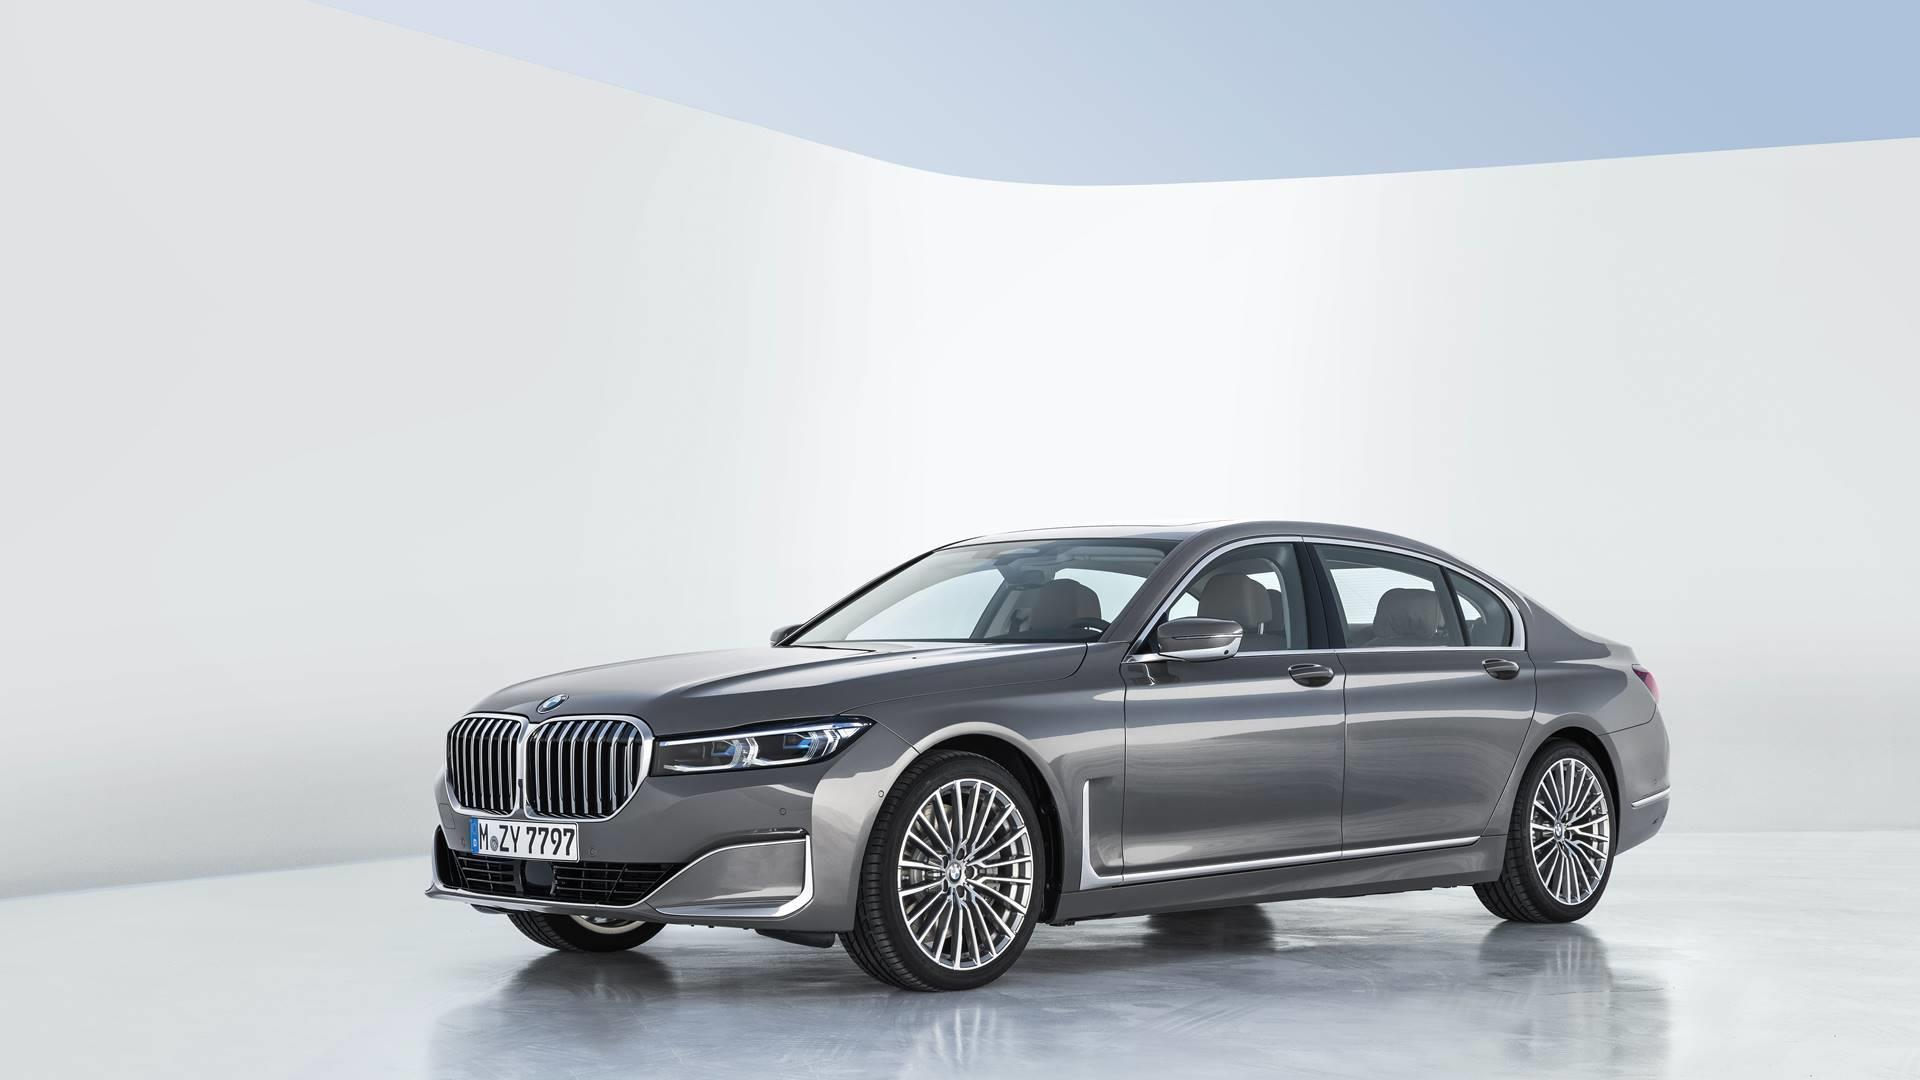 2020 BMW 7-Series News And Information